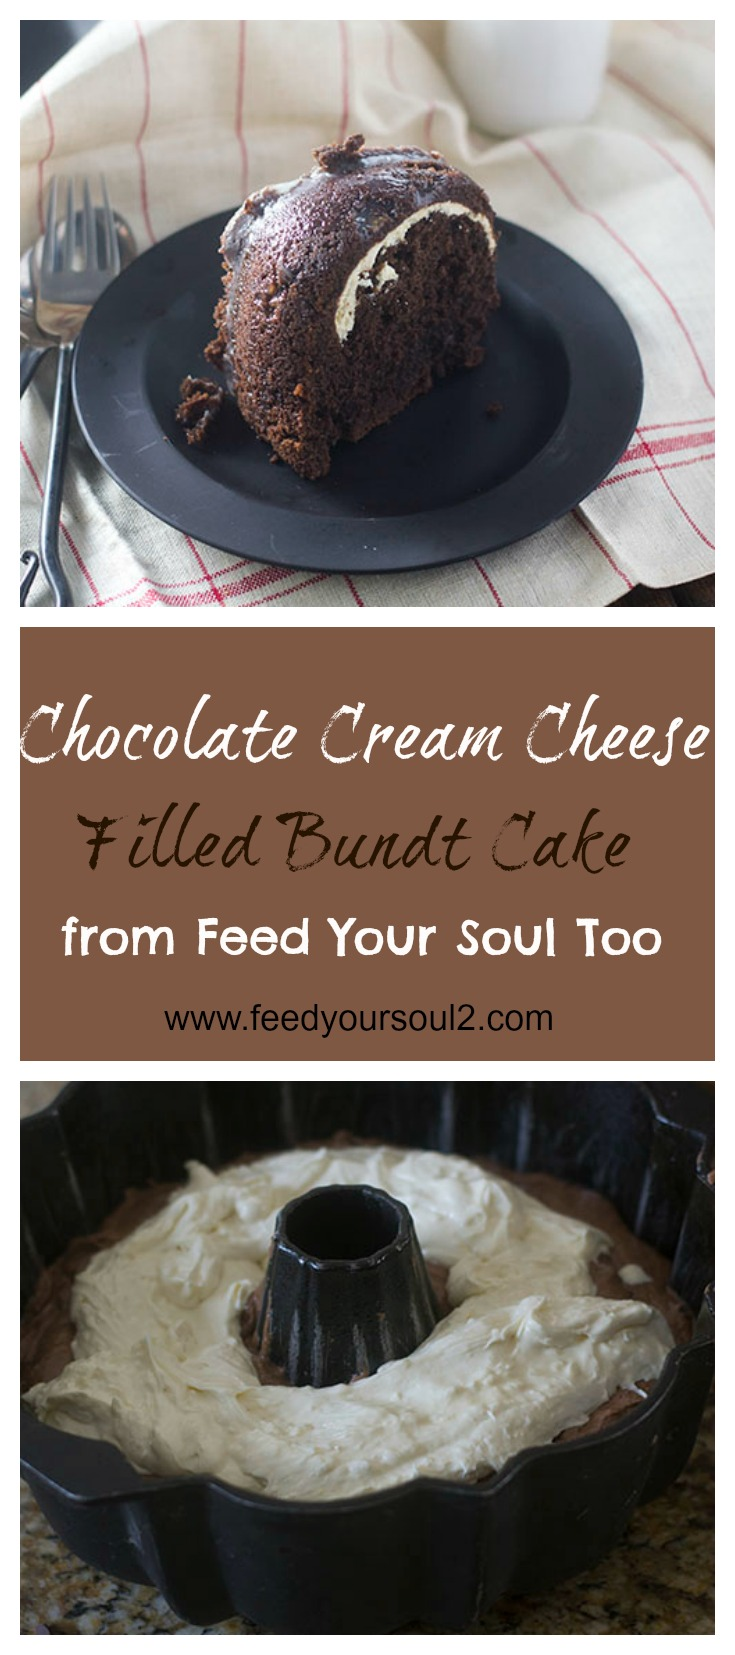 Chocolate Cream Cheese Filled Bundt Cake #dessert #chocolate #creamcheese feedyoursoul2.com